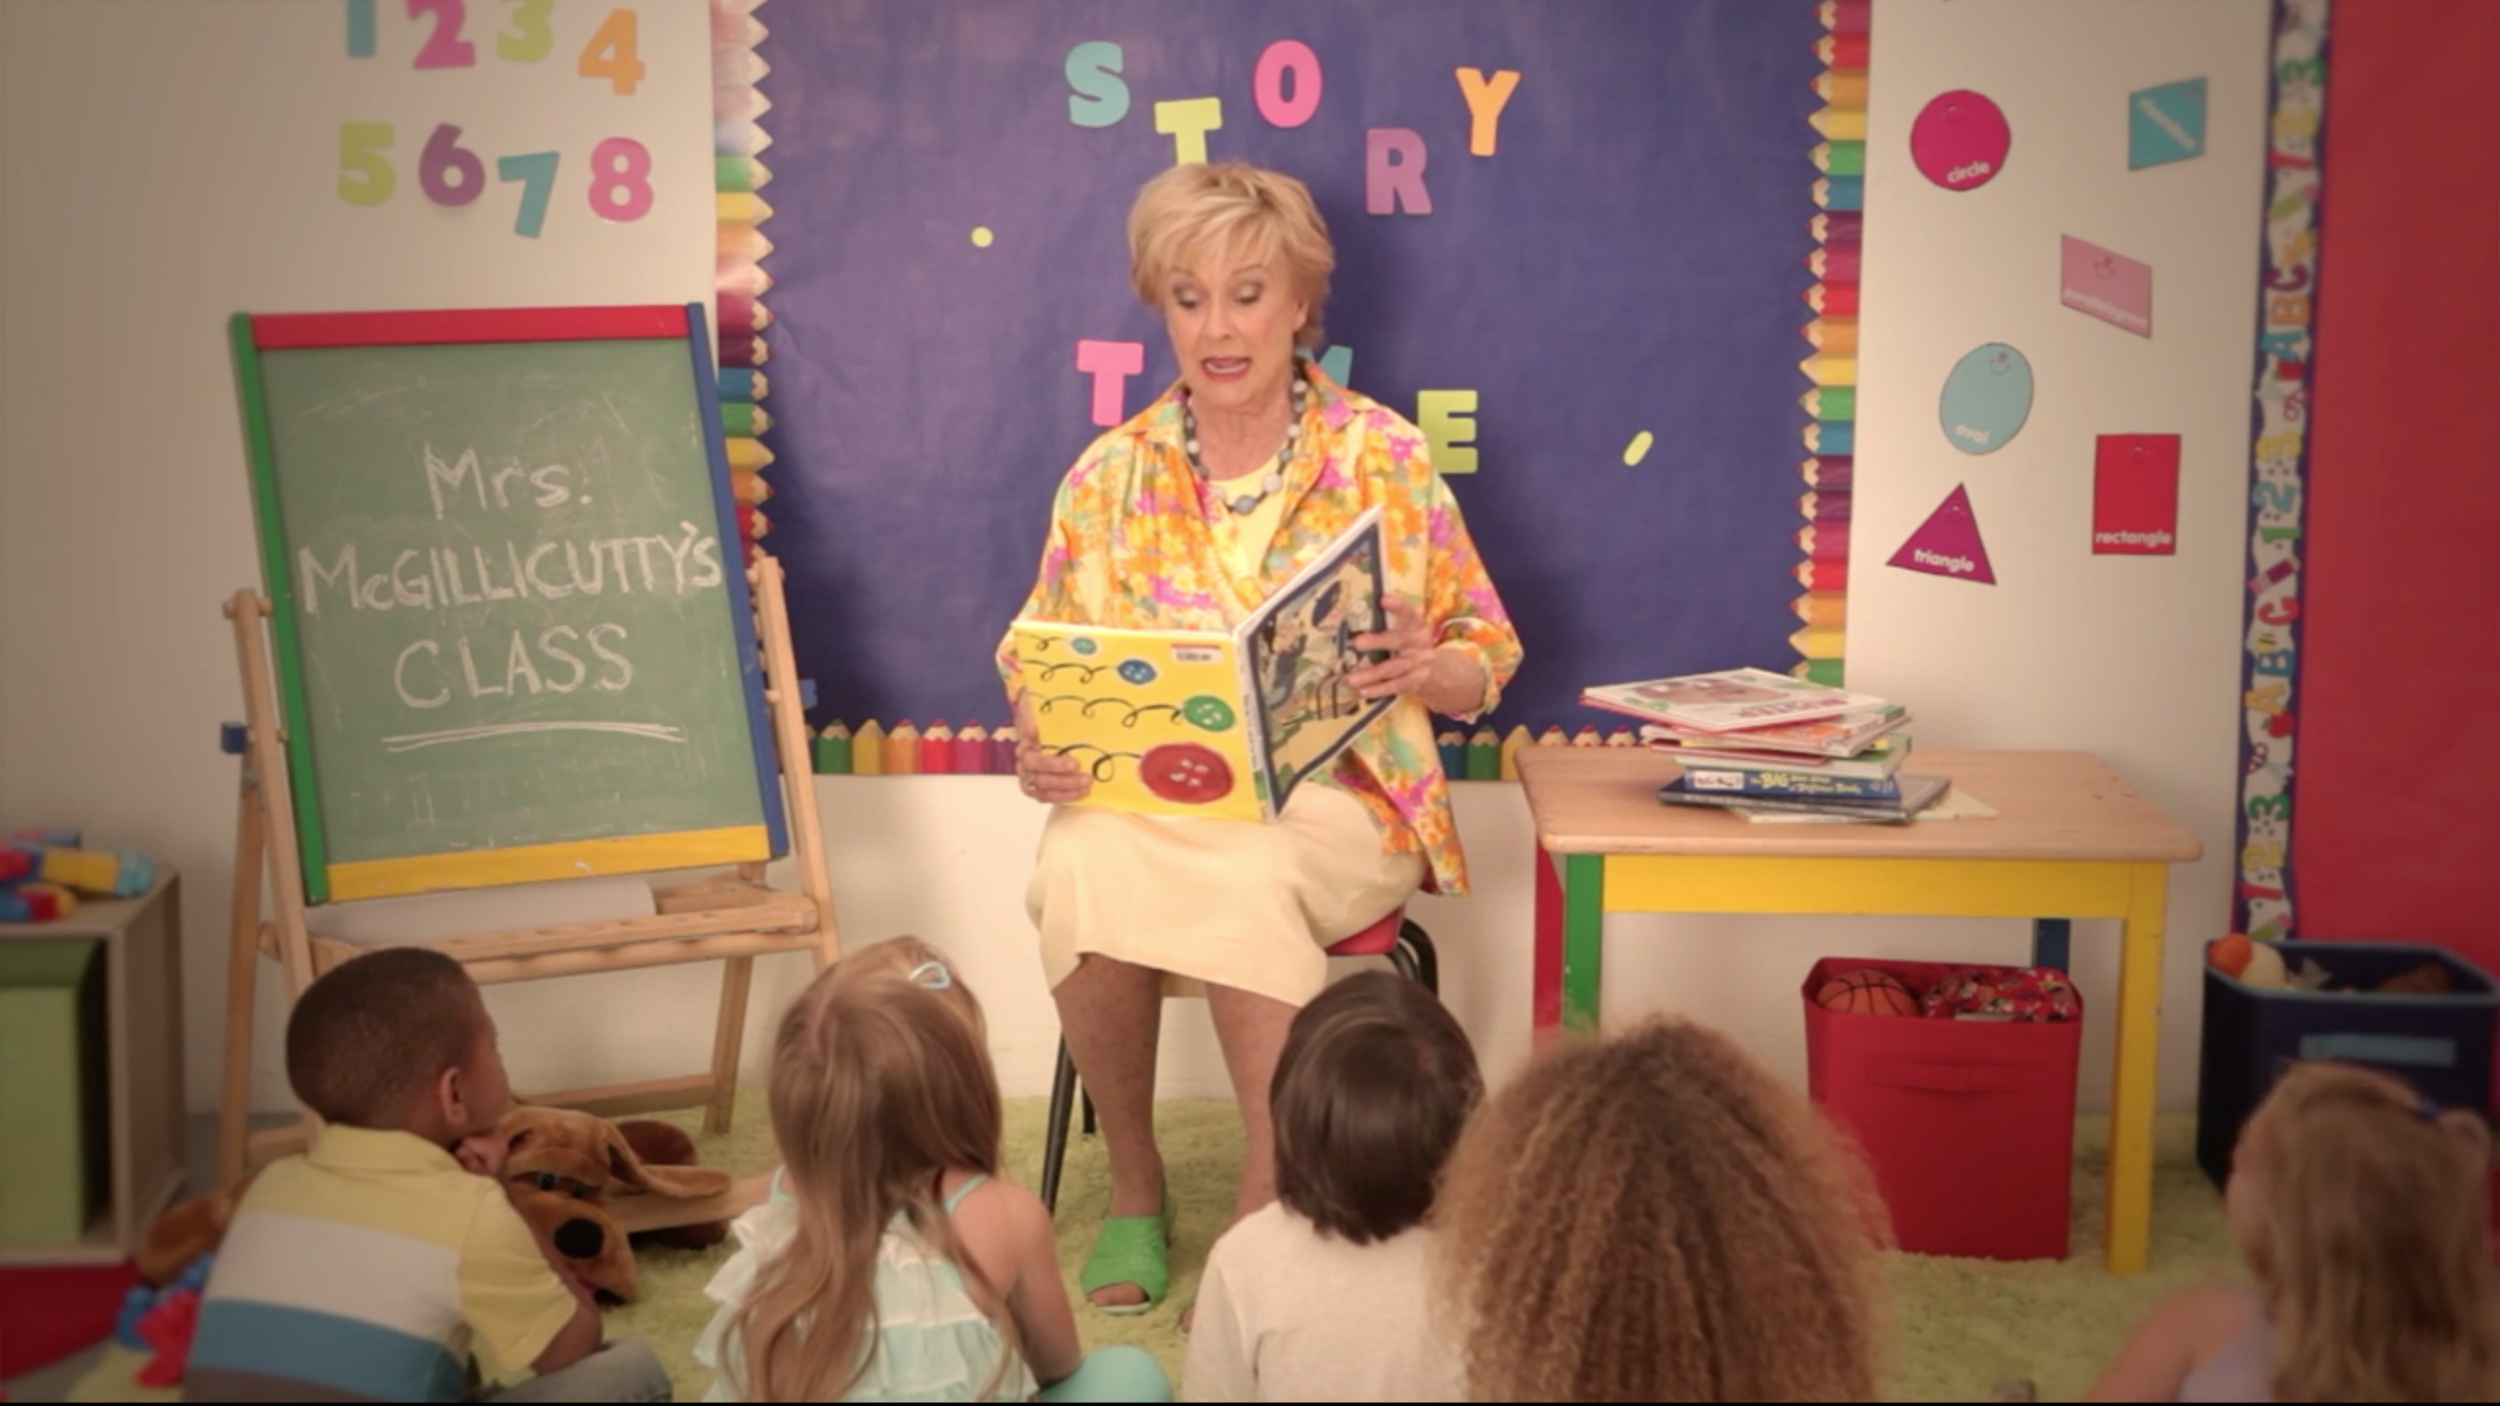 READING WITH MRS. MCGILLICUTTY- Cloris Leachman